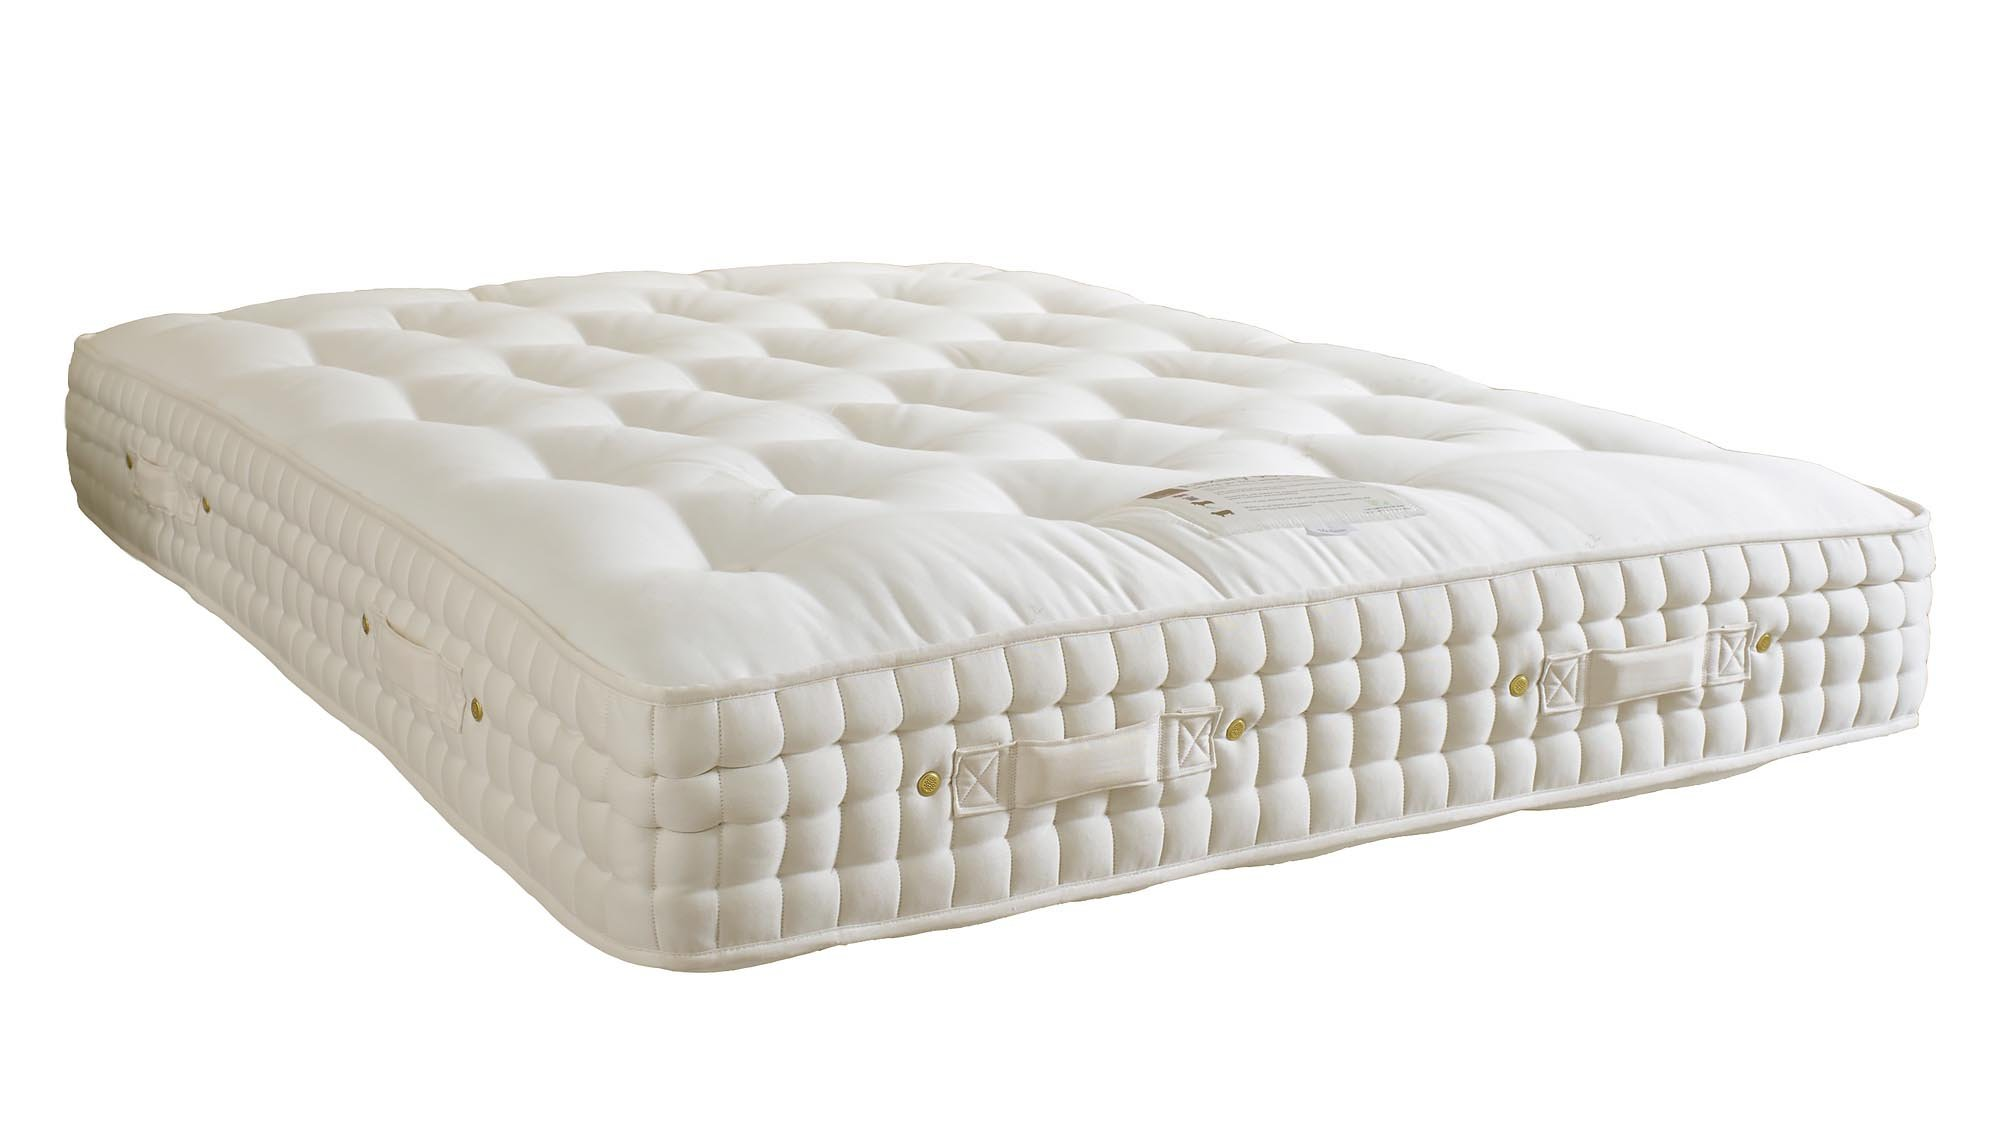 Which orthopedic mattresses are better